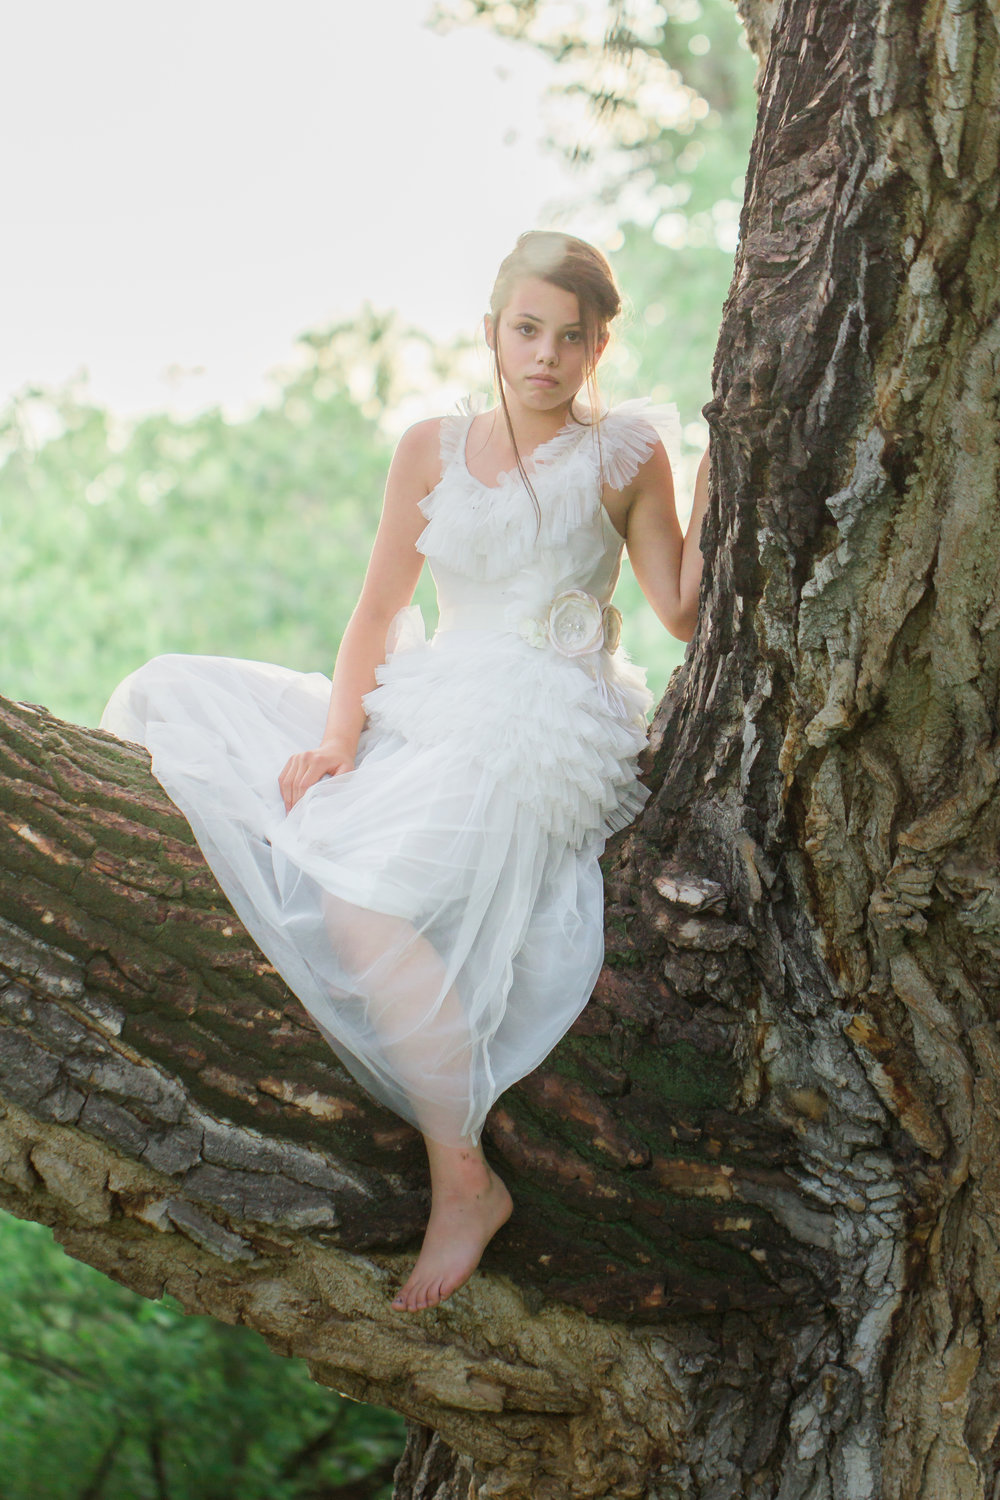 Teenager wearing a long white dress sitting in a tree.